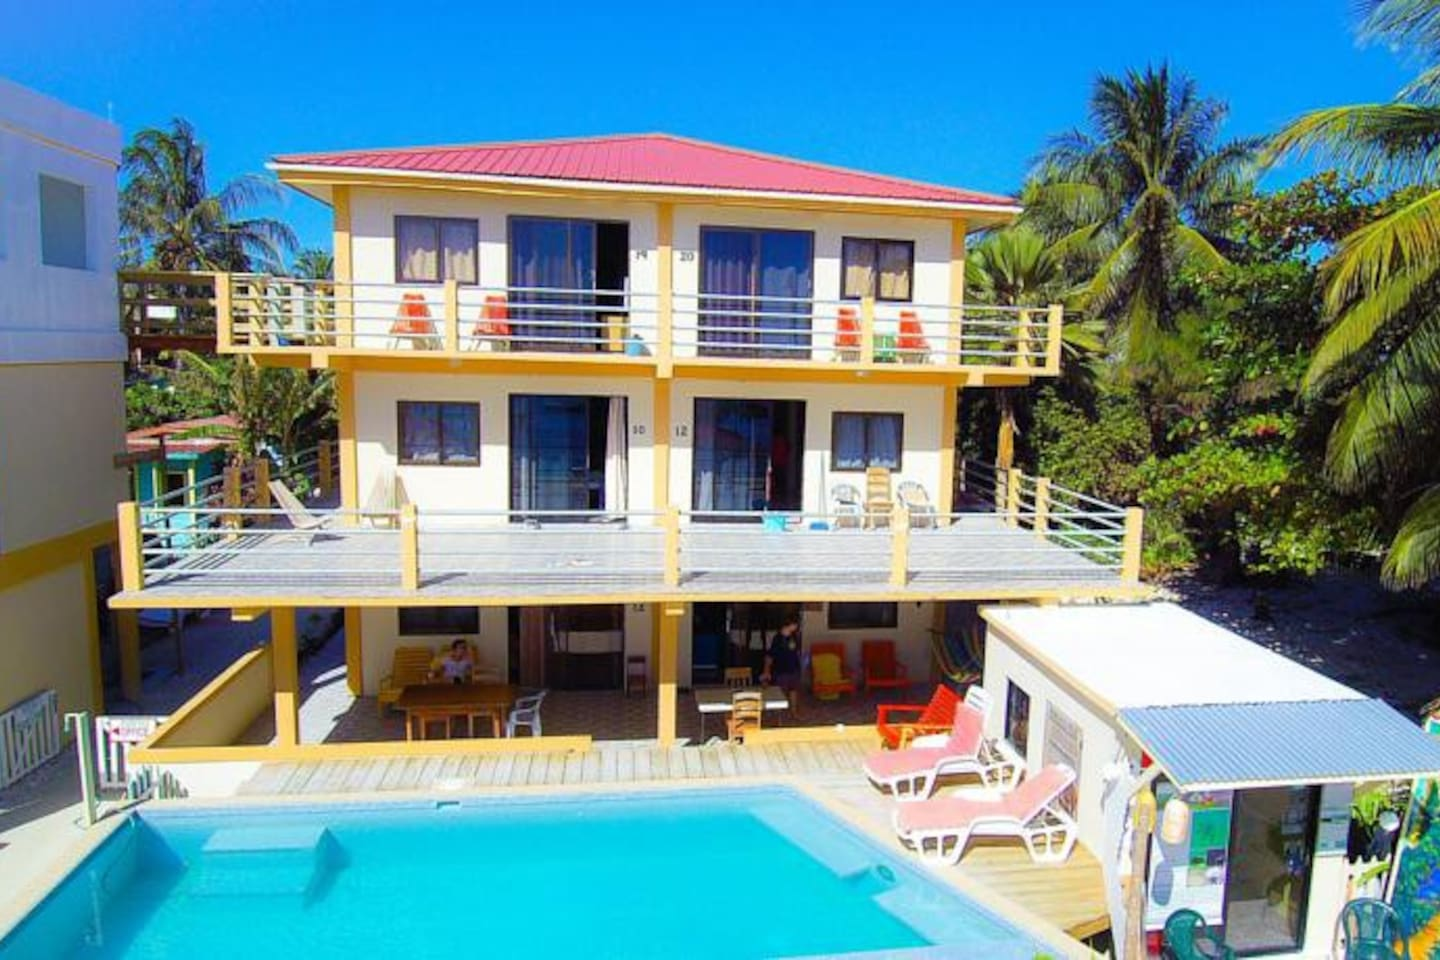 Our Guest Get To Enjoy Pool On The Beach Private And Great Location